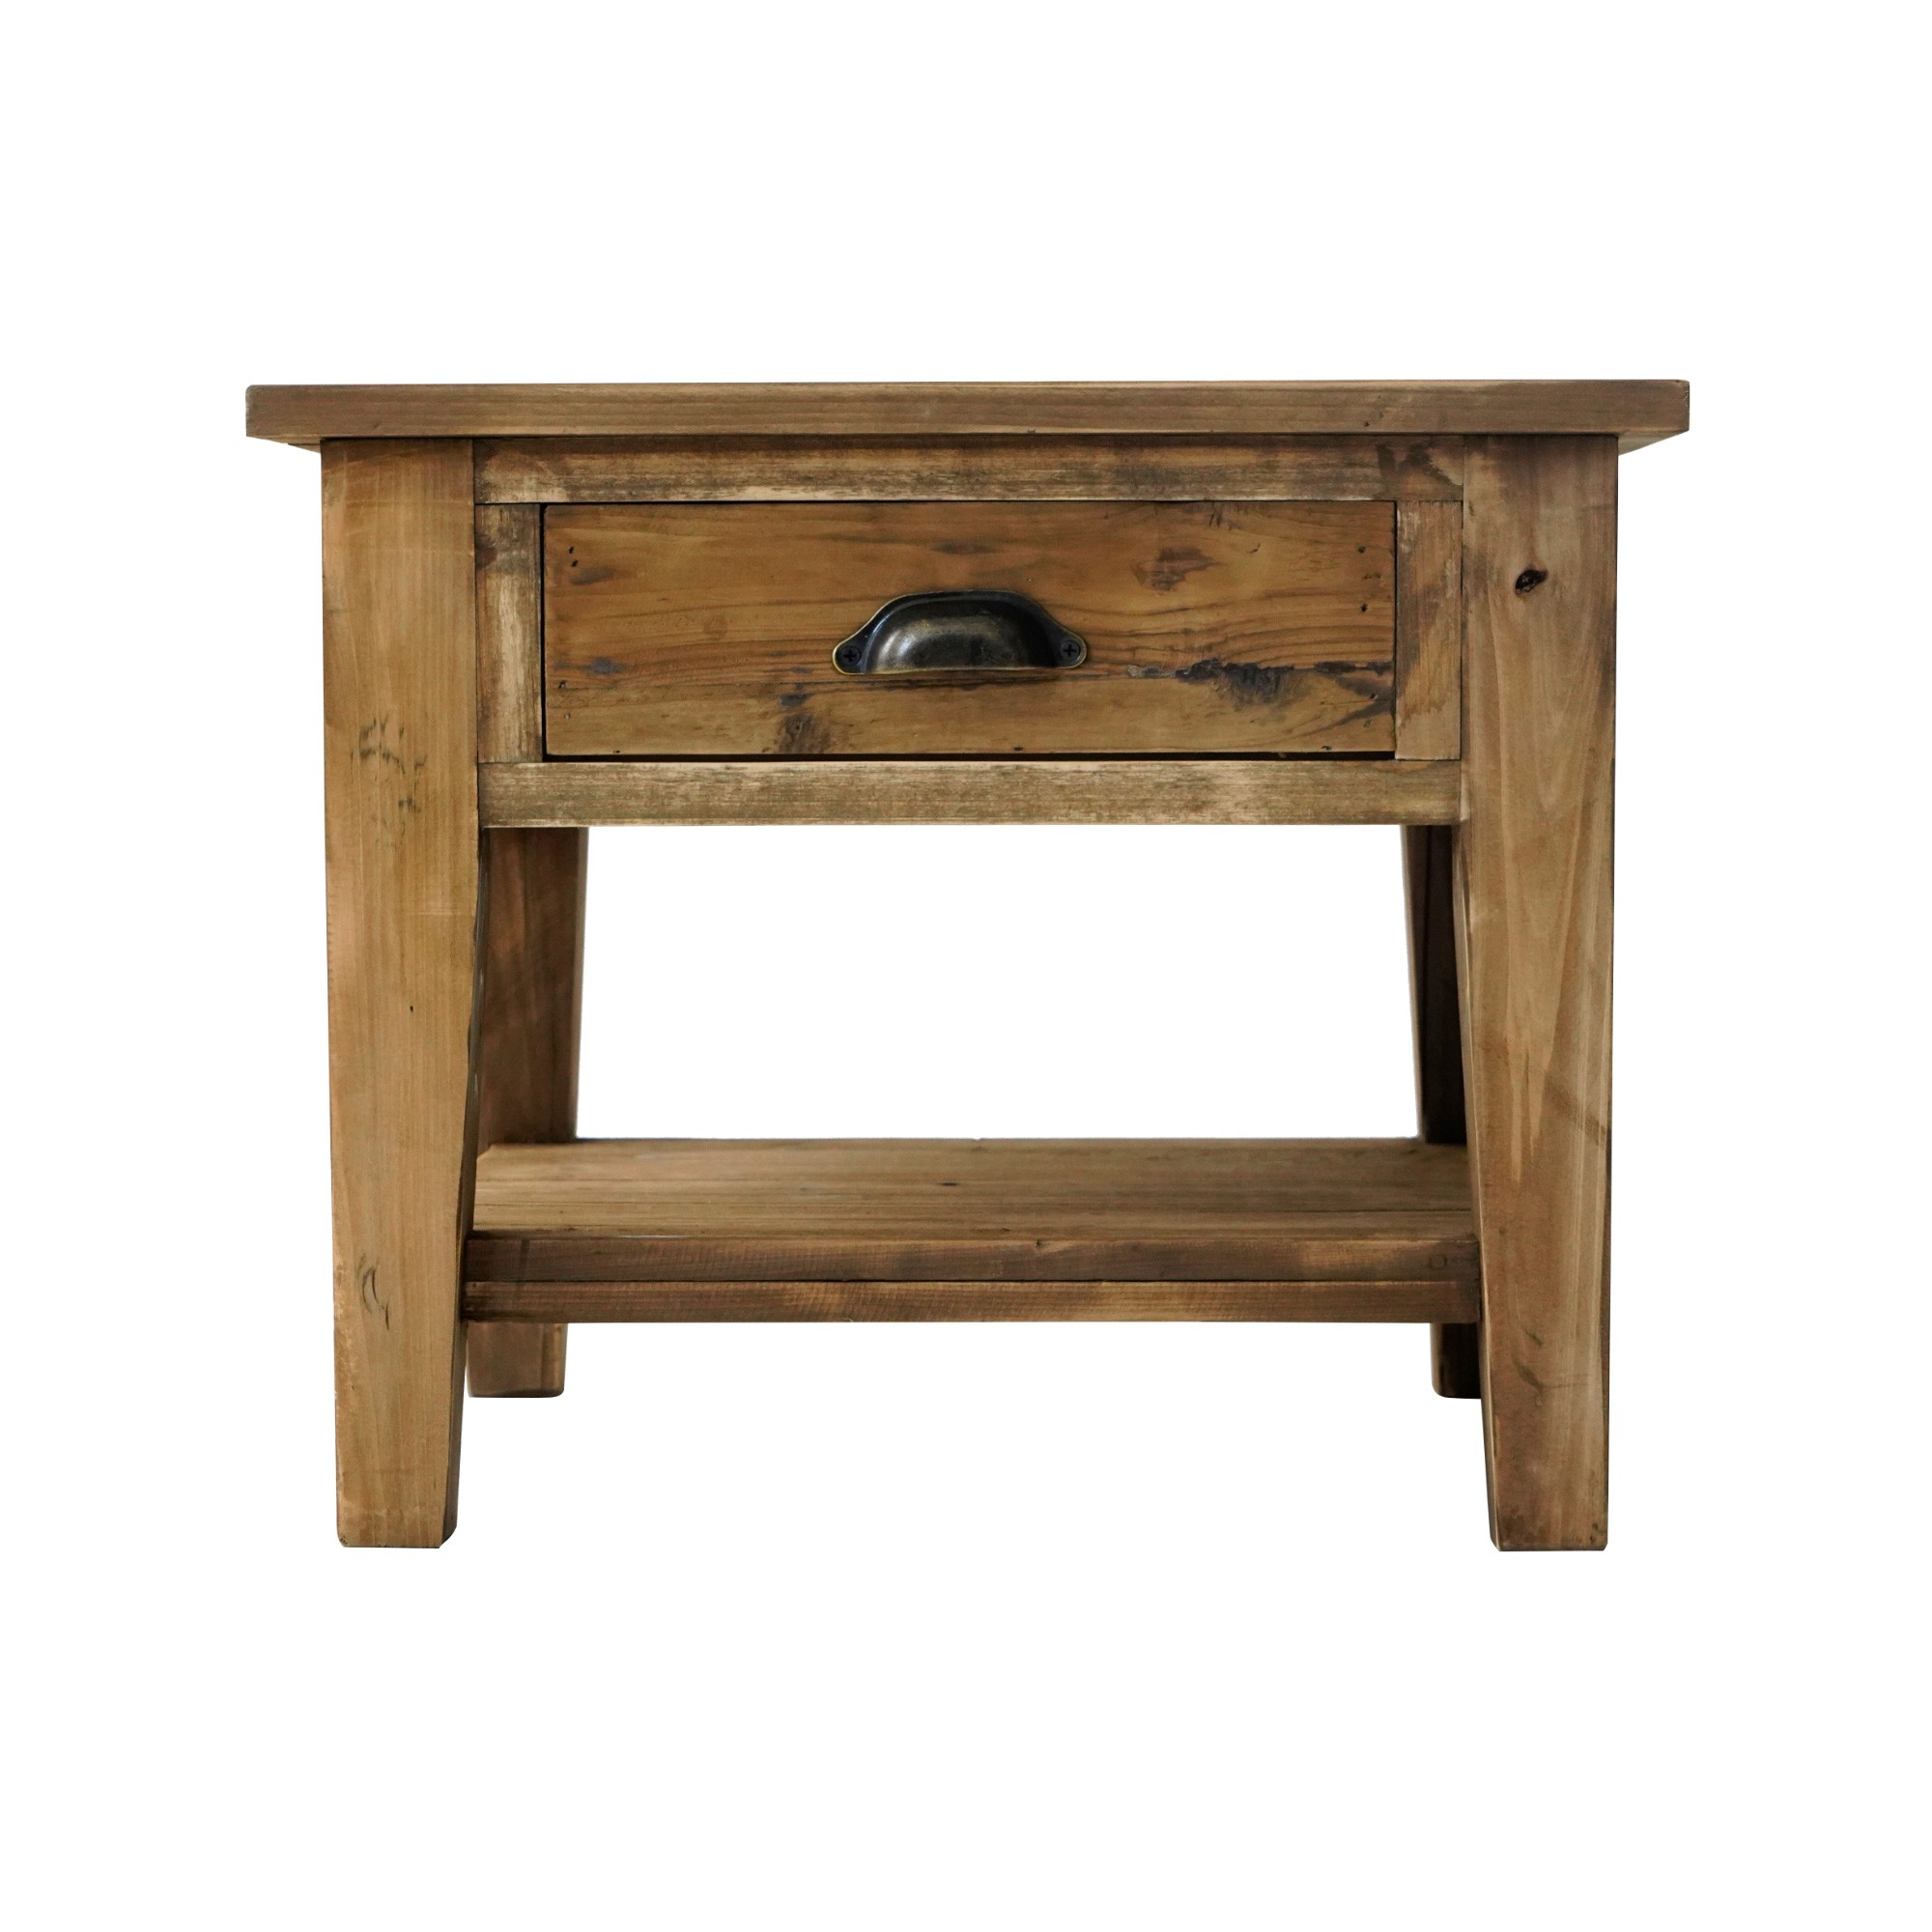 Montauk Rustic Fir Timber Side Table